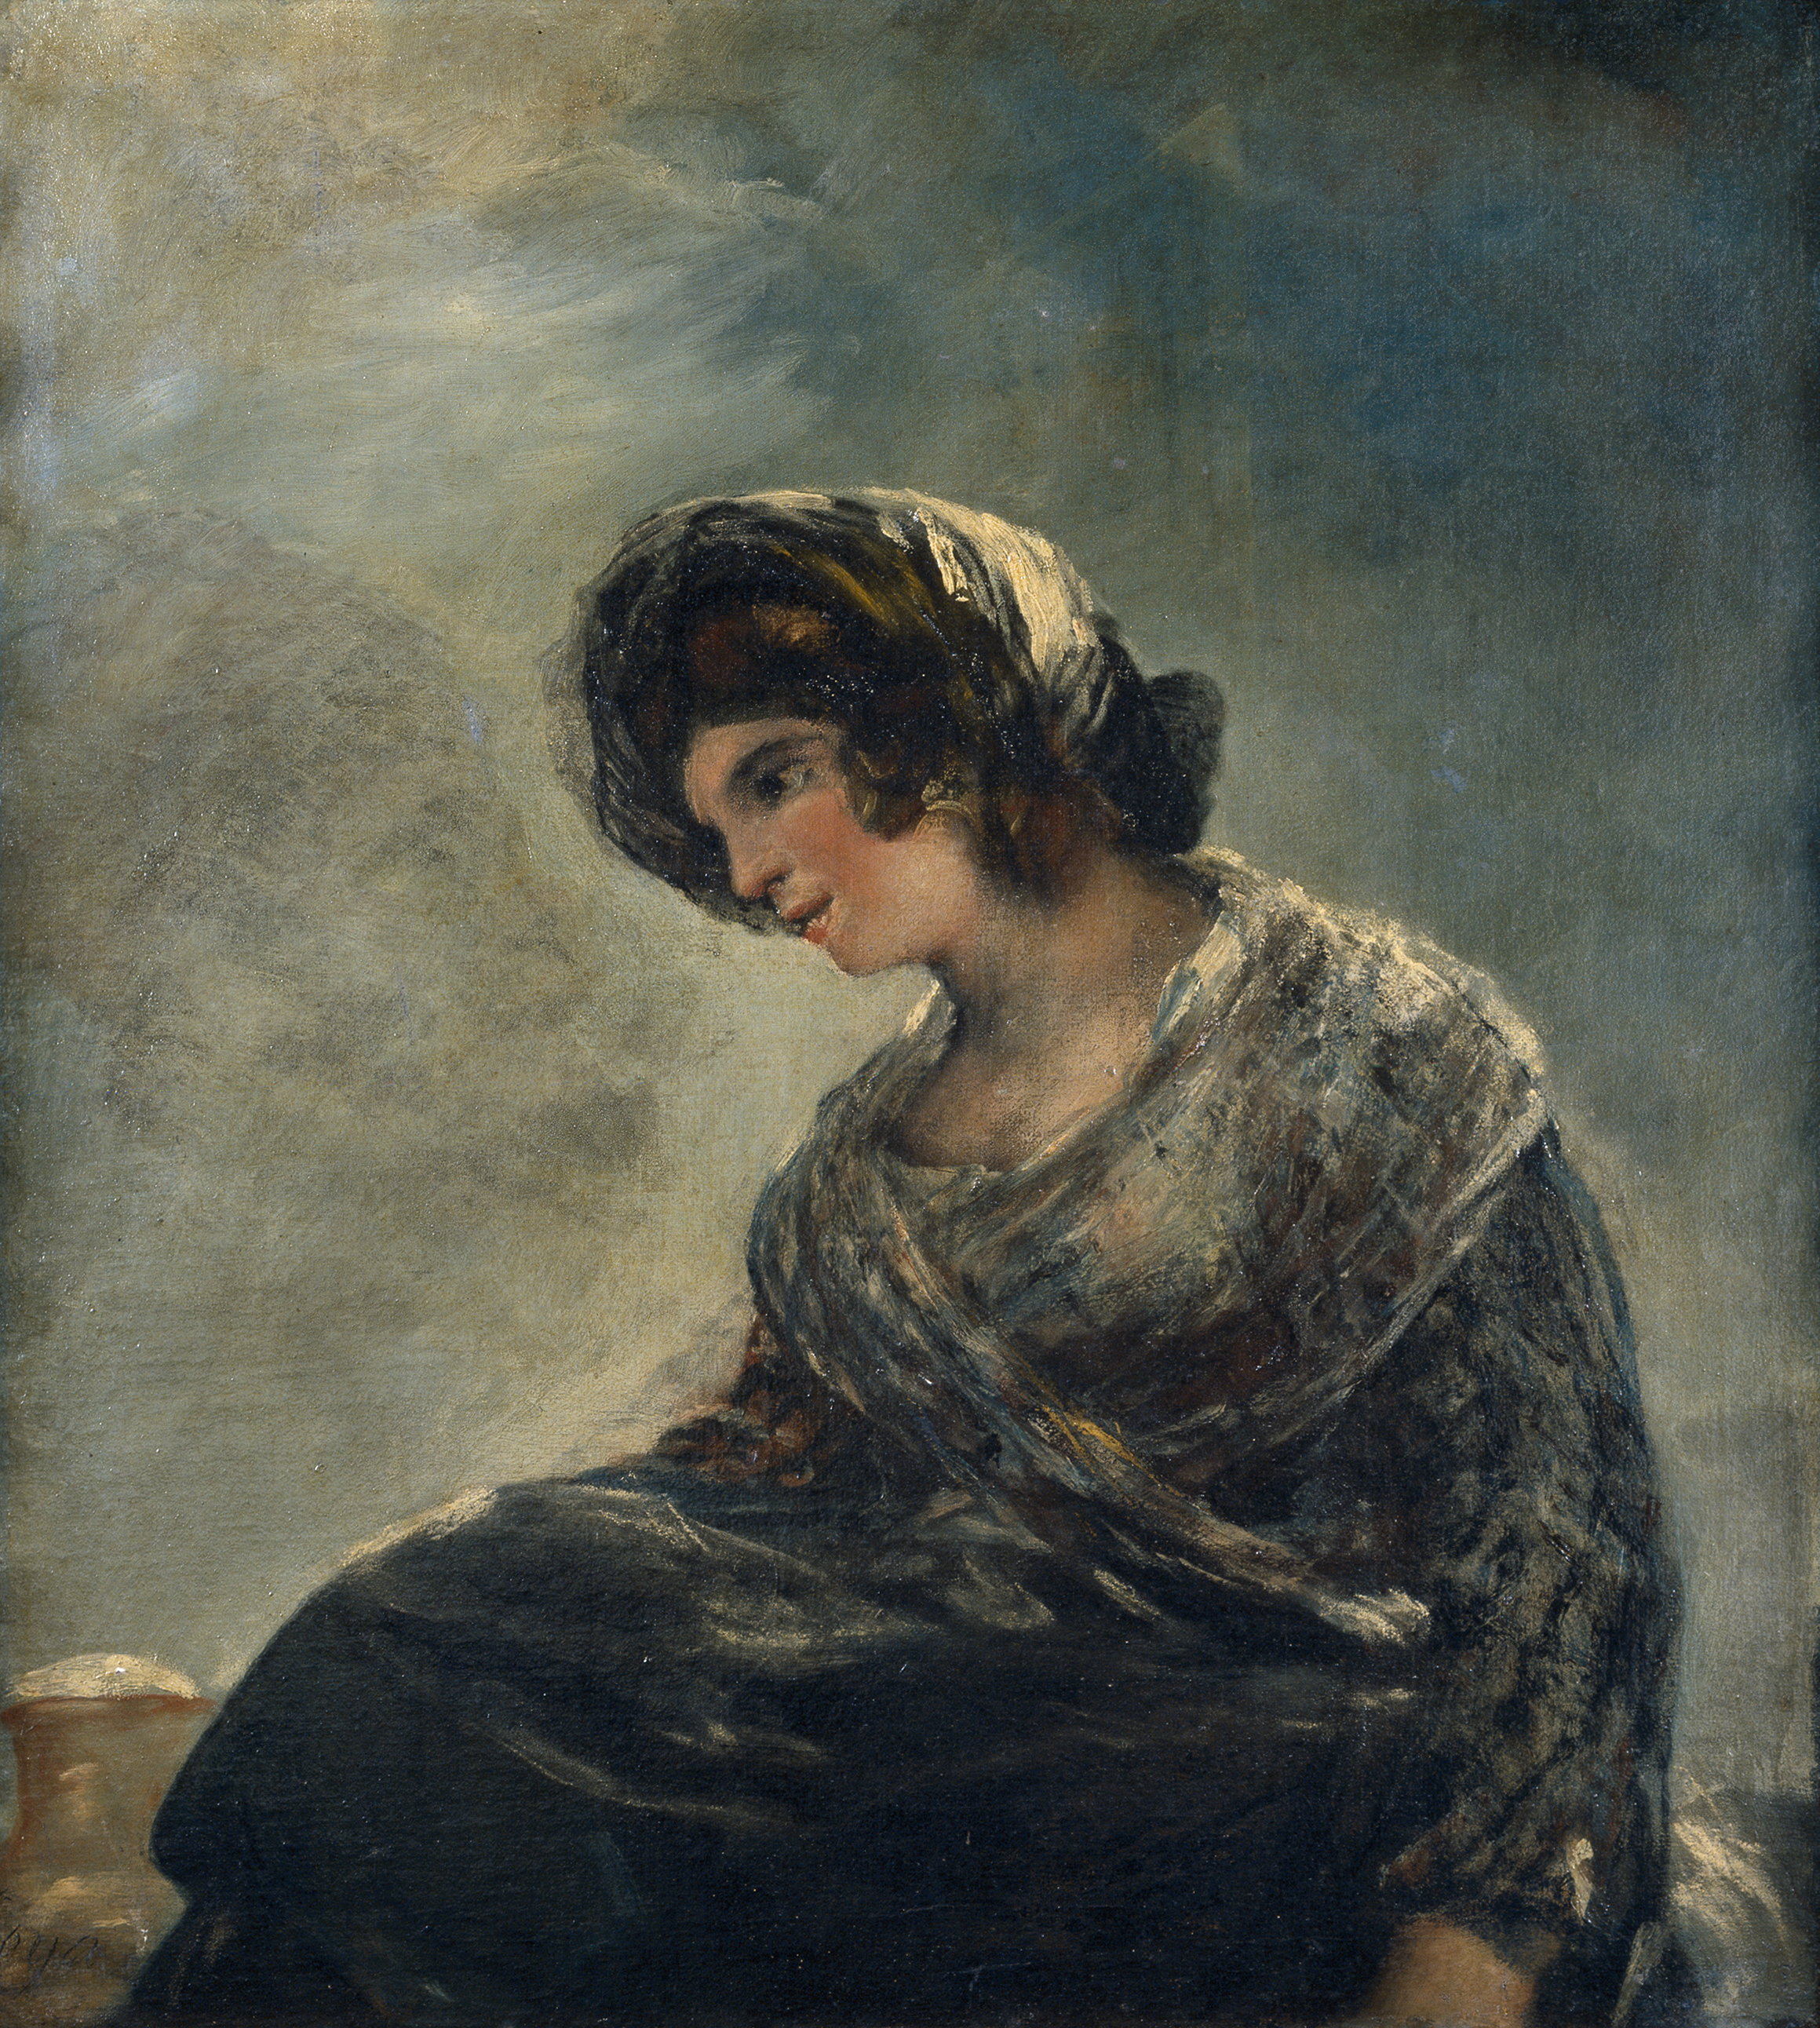 he Milkmaid of Bordeaux, by Goya